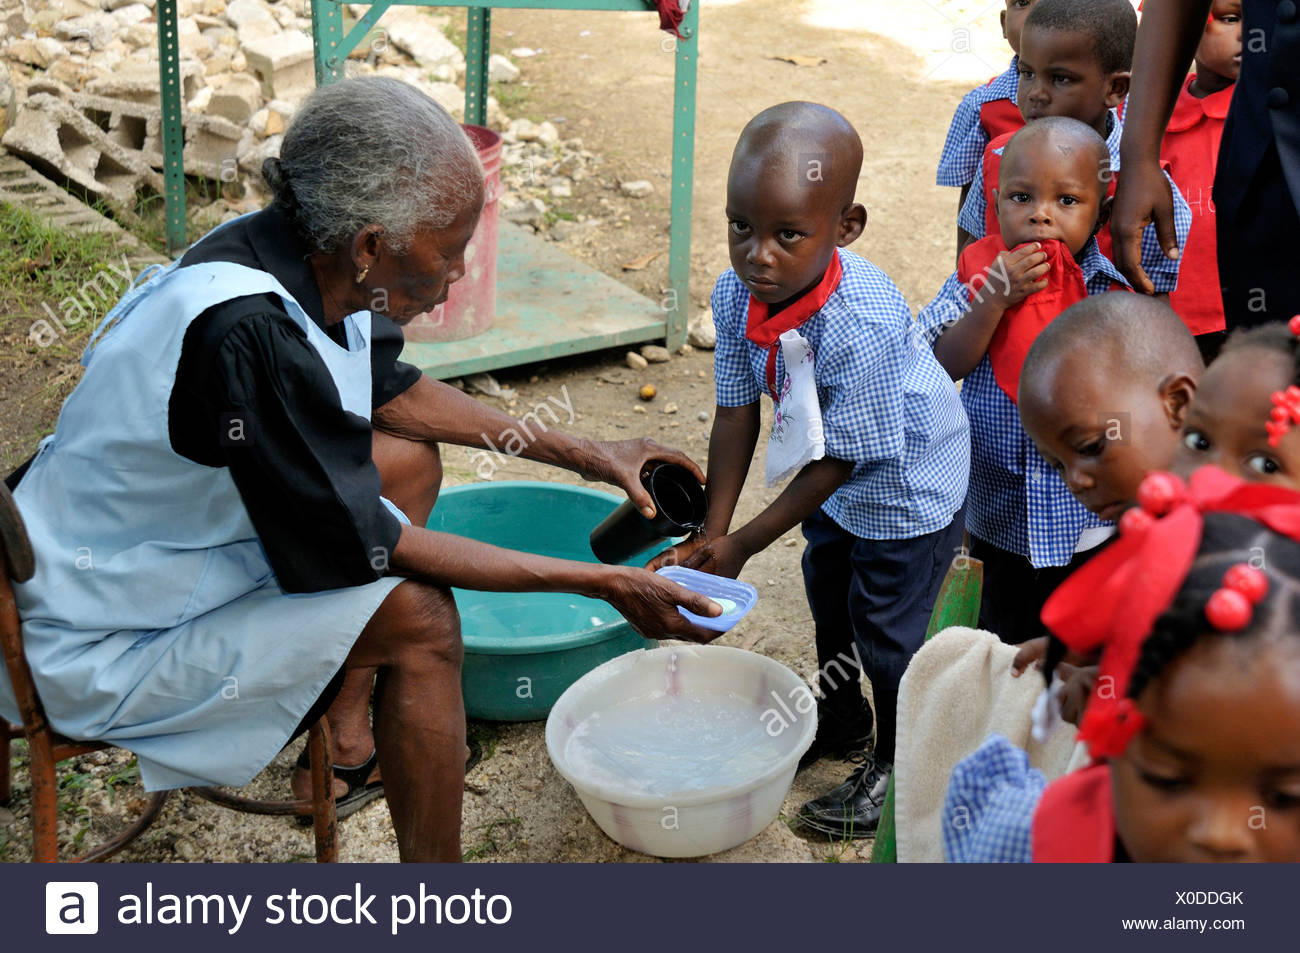 As a prevention against Cholera infections, children learn to wash their hands in a preschool, , Haiti, Caribbean - Stock Image